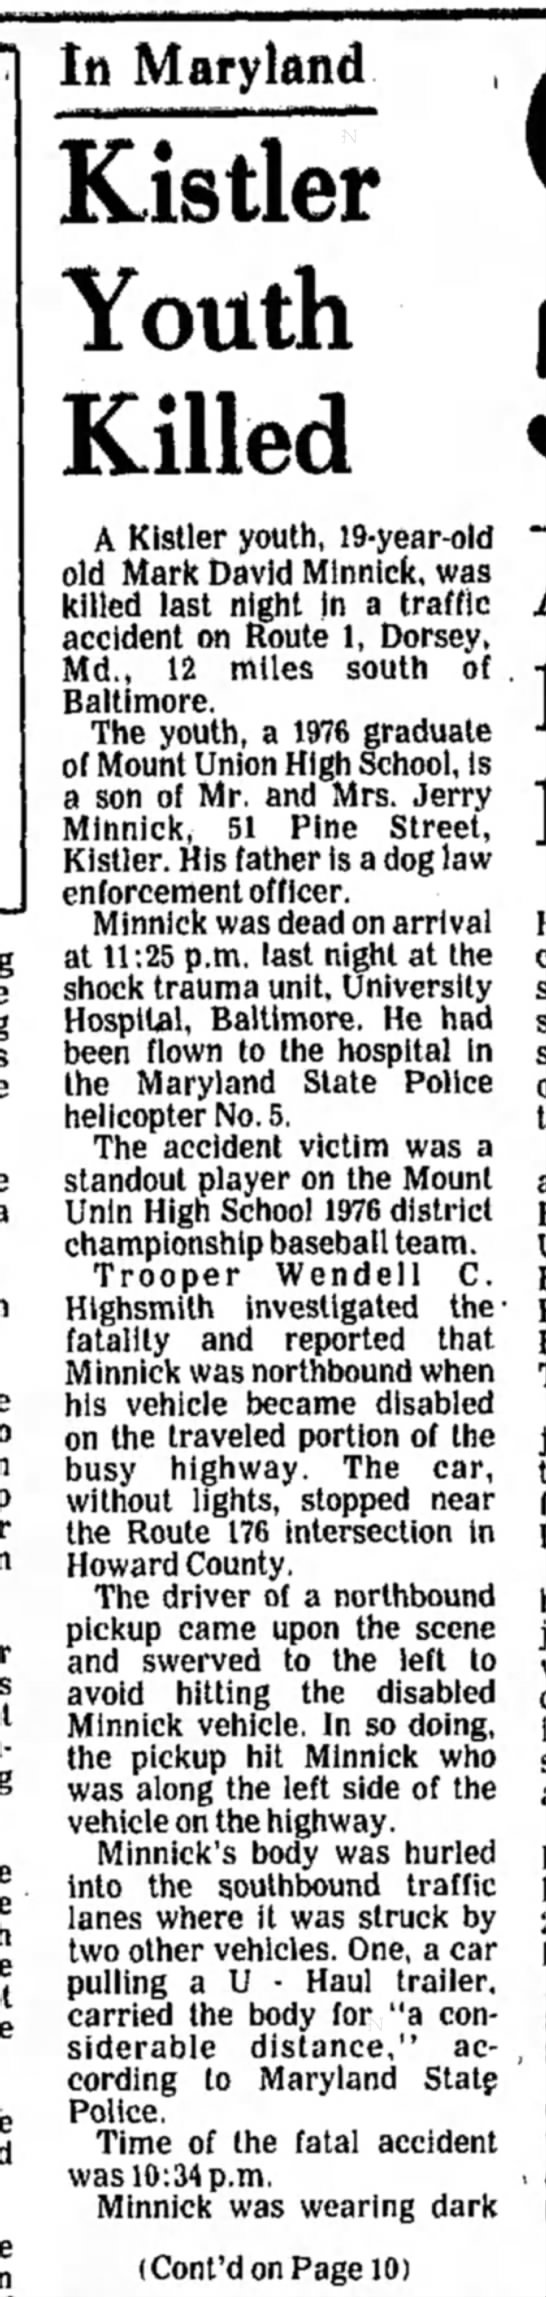 Mark David Minnick death-p.1-TDN-28 May 1977--part 1 - In Maryland Kistler Youth Killed A Kistler...